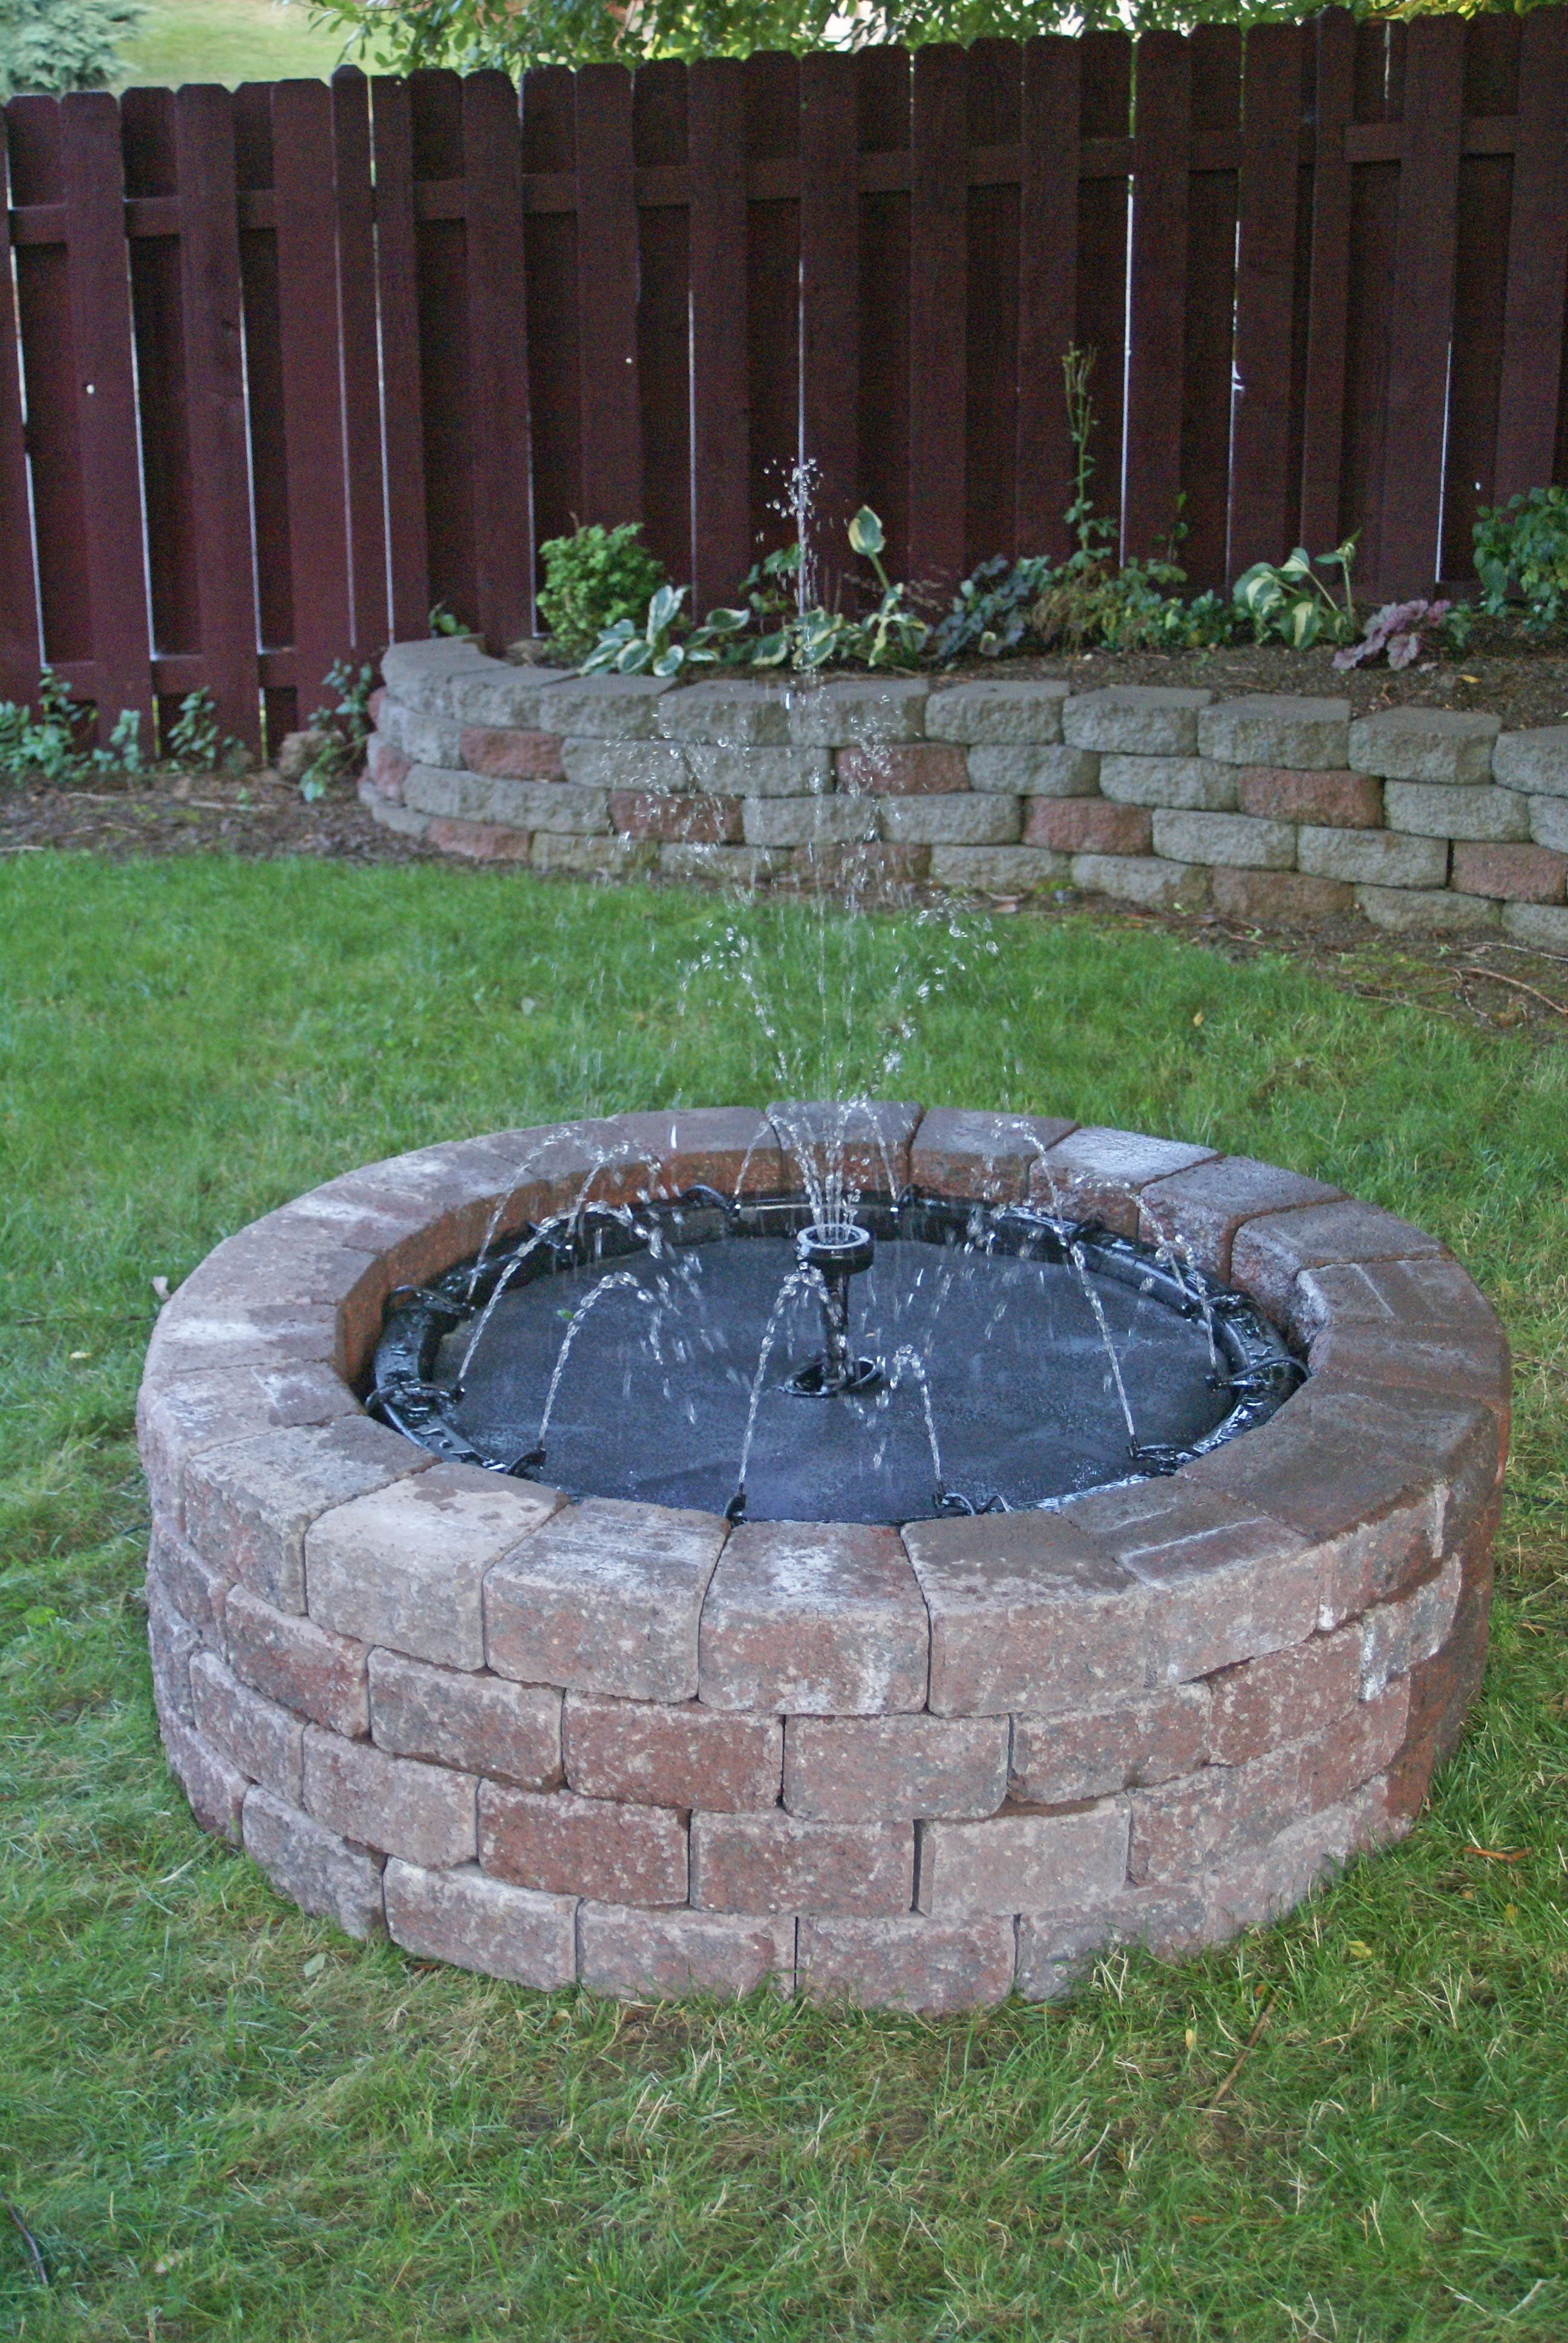 Do it yourself garden paths do it yourself magical water do it yourself garden paths do it yourself magical water fountains solutioingenieria Image collections